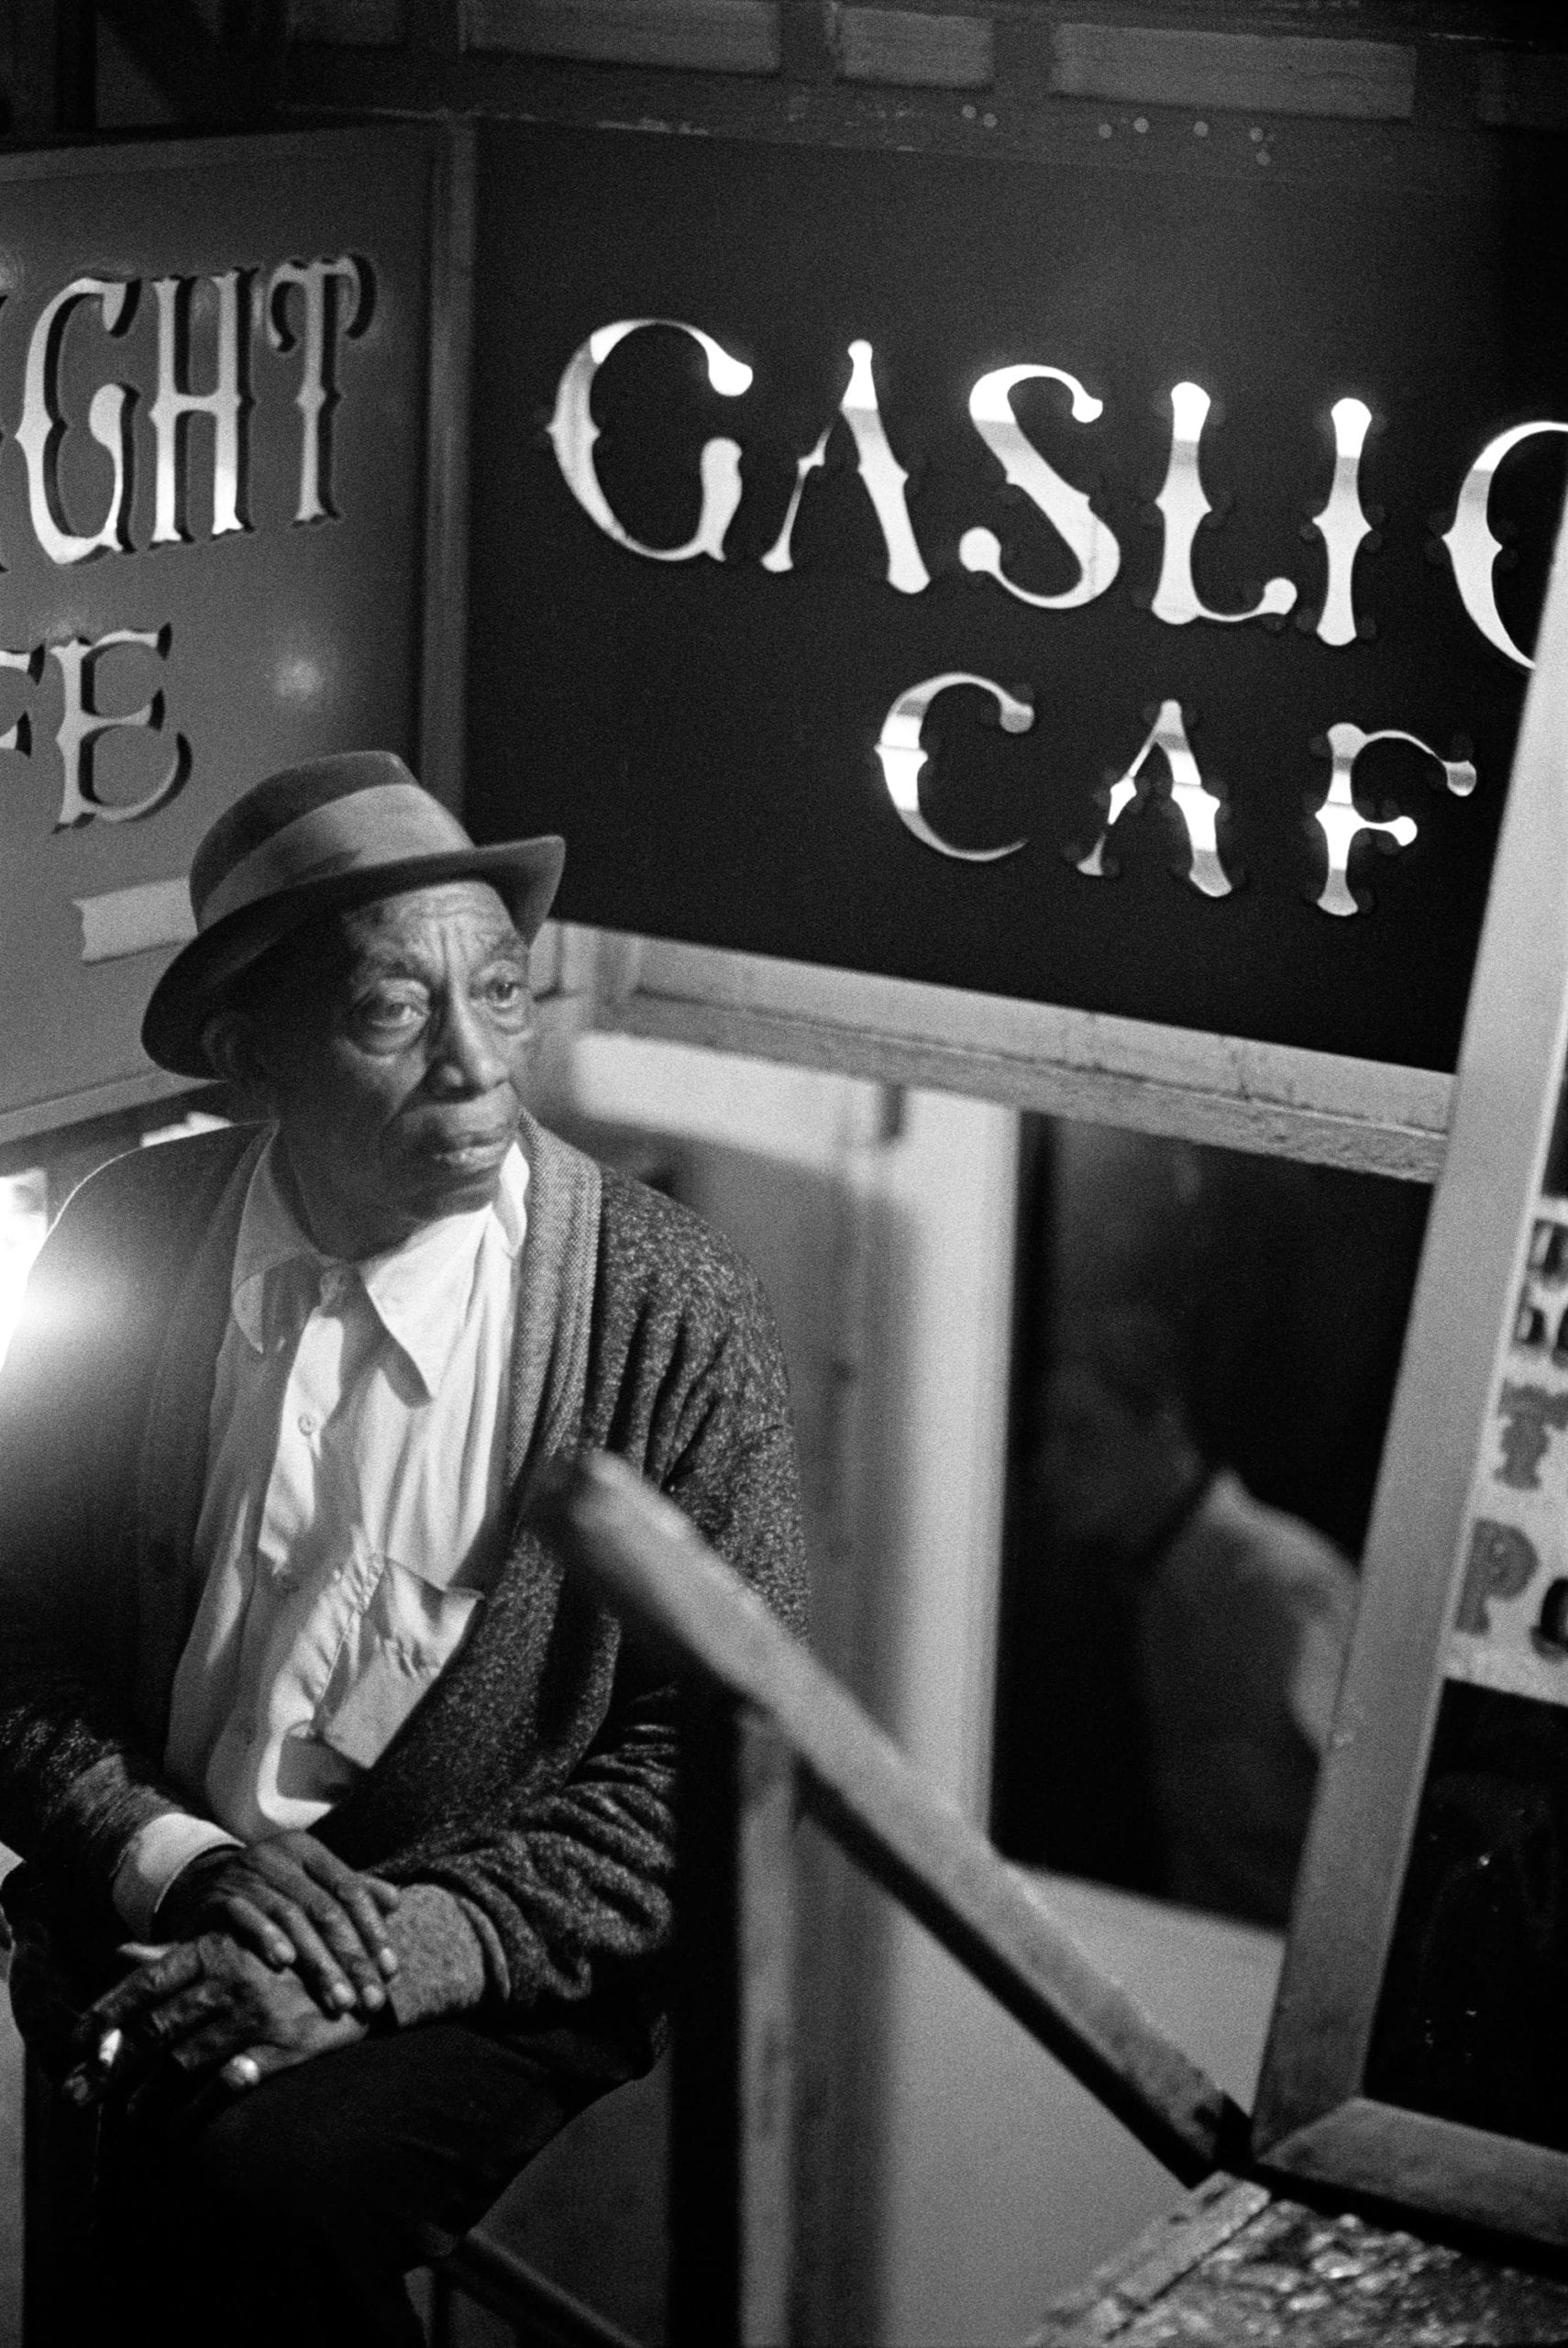 Mississippi John Hurt, outside The Gaslight Cafe, New York City, c. 1963